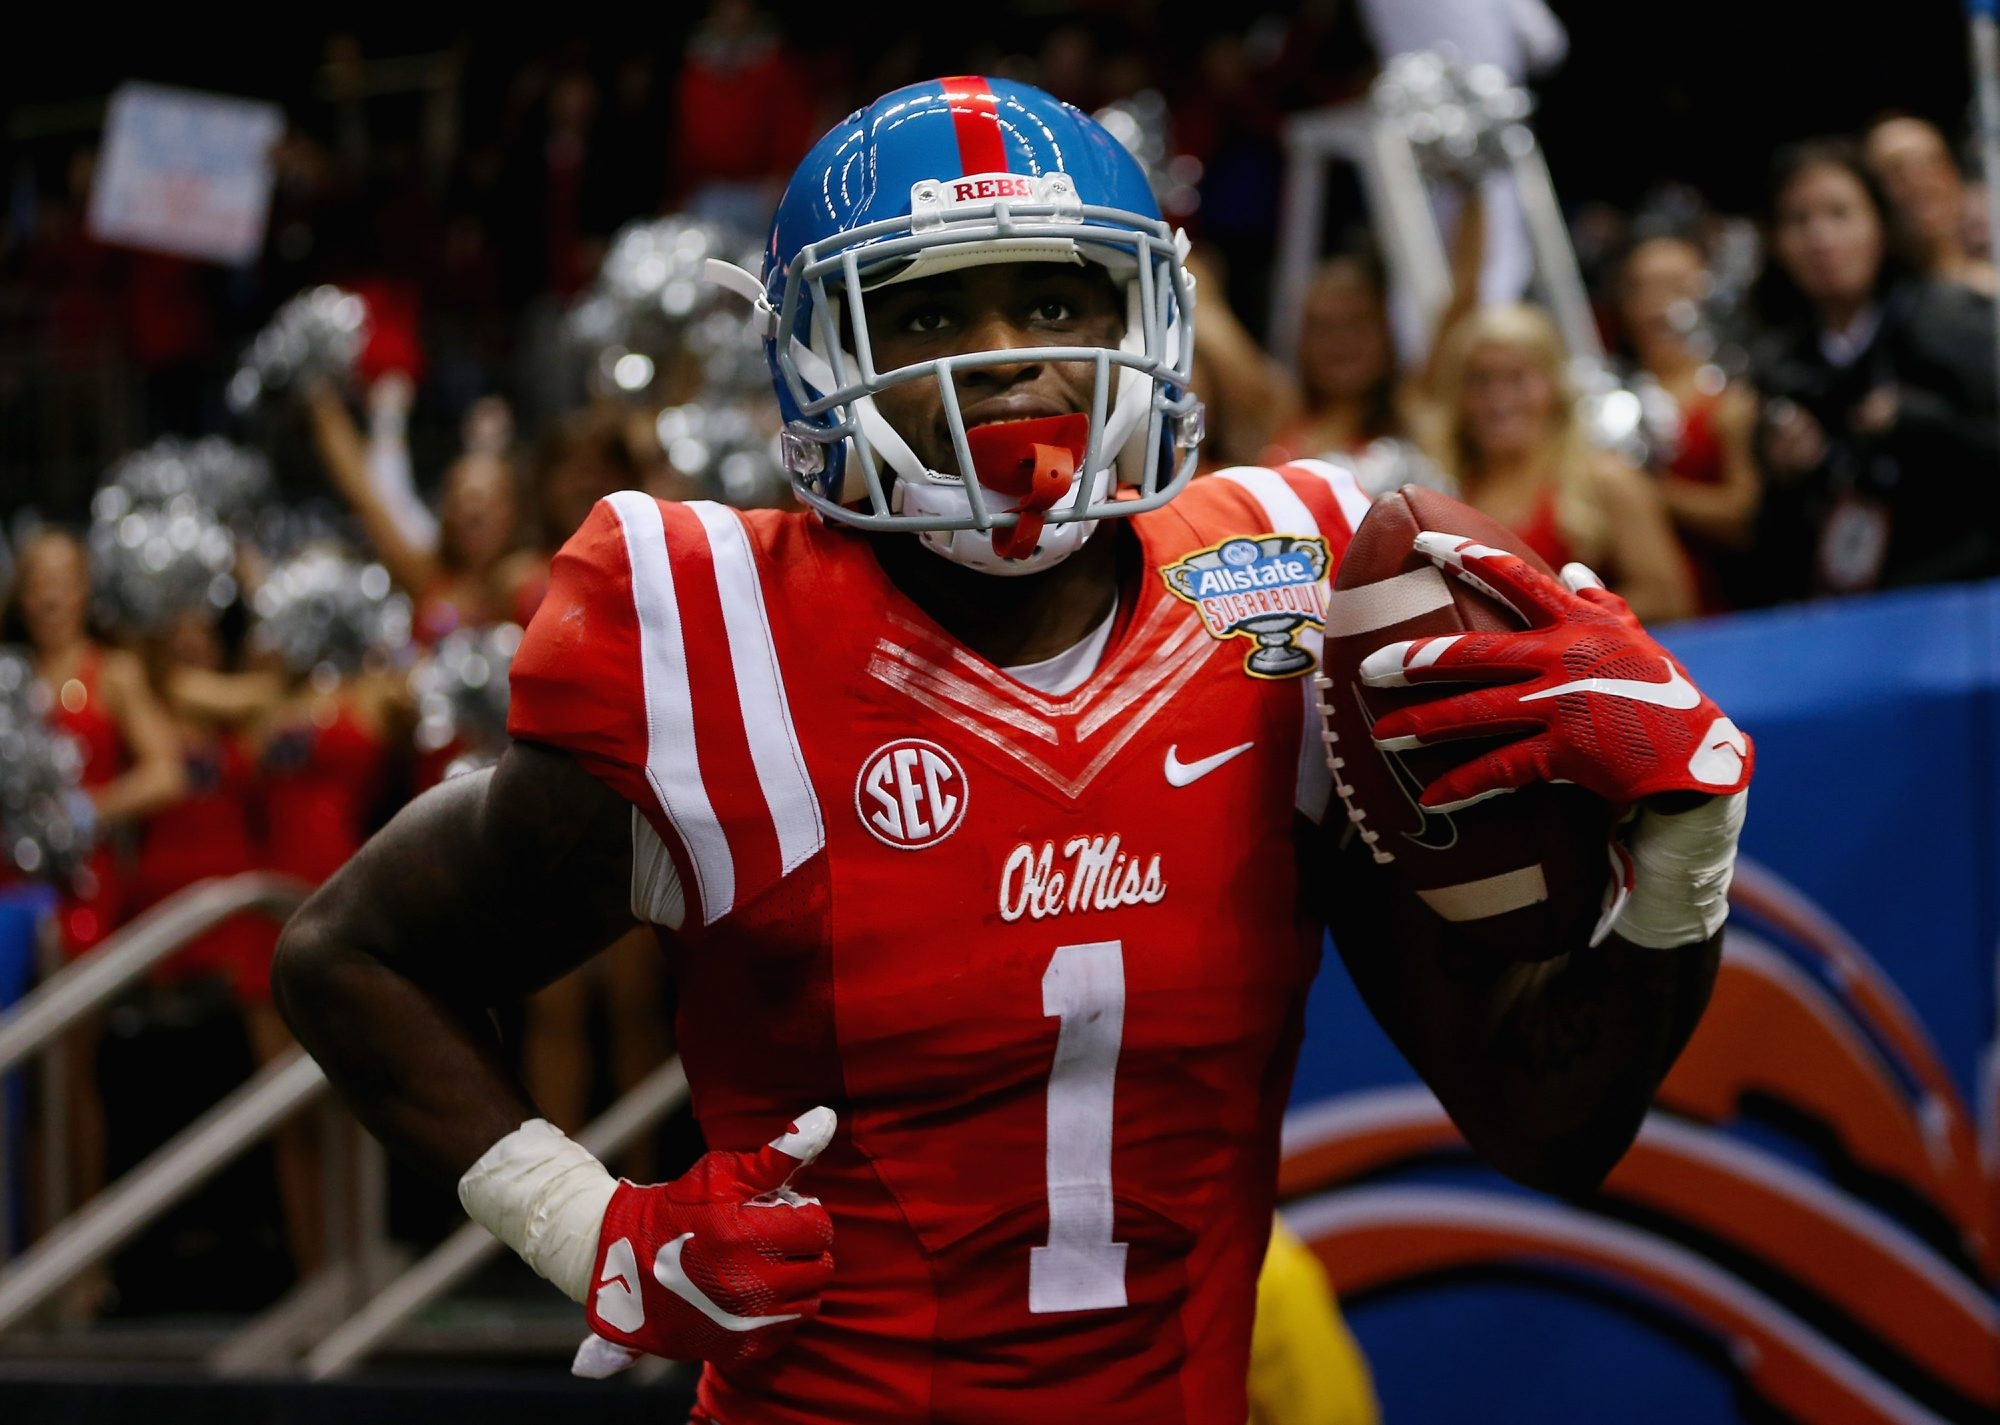 Laquon Treadwell of Mississippi is one of the few with top-end receiving skills in the 2016 NFL College Draft.